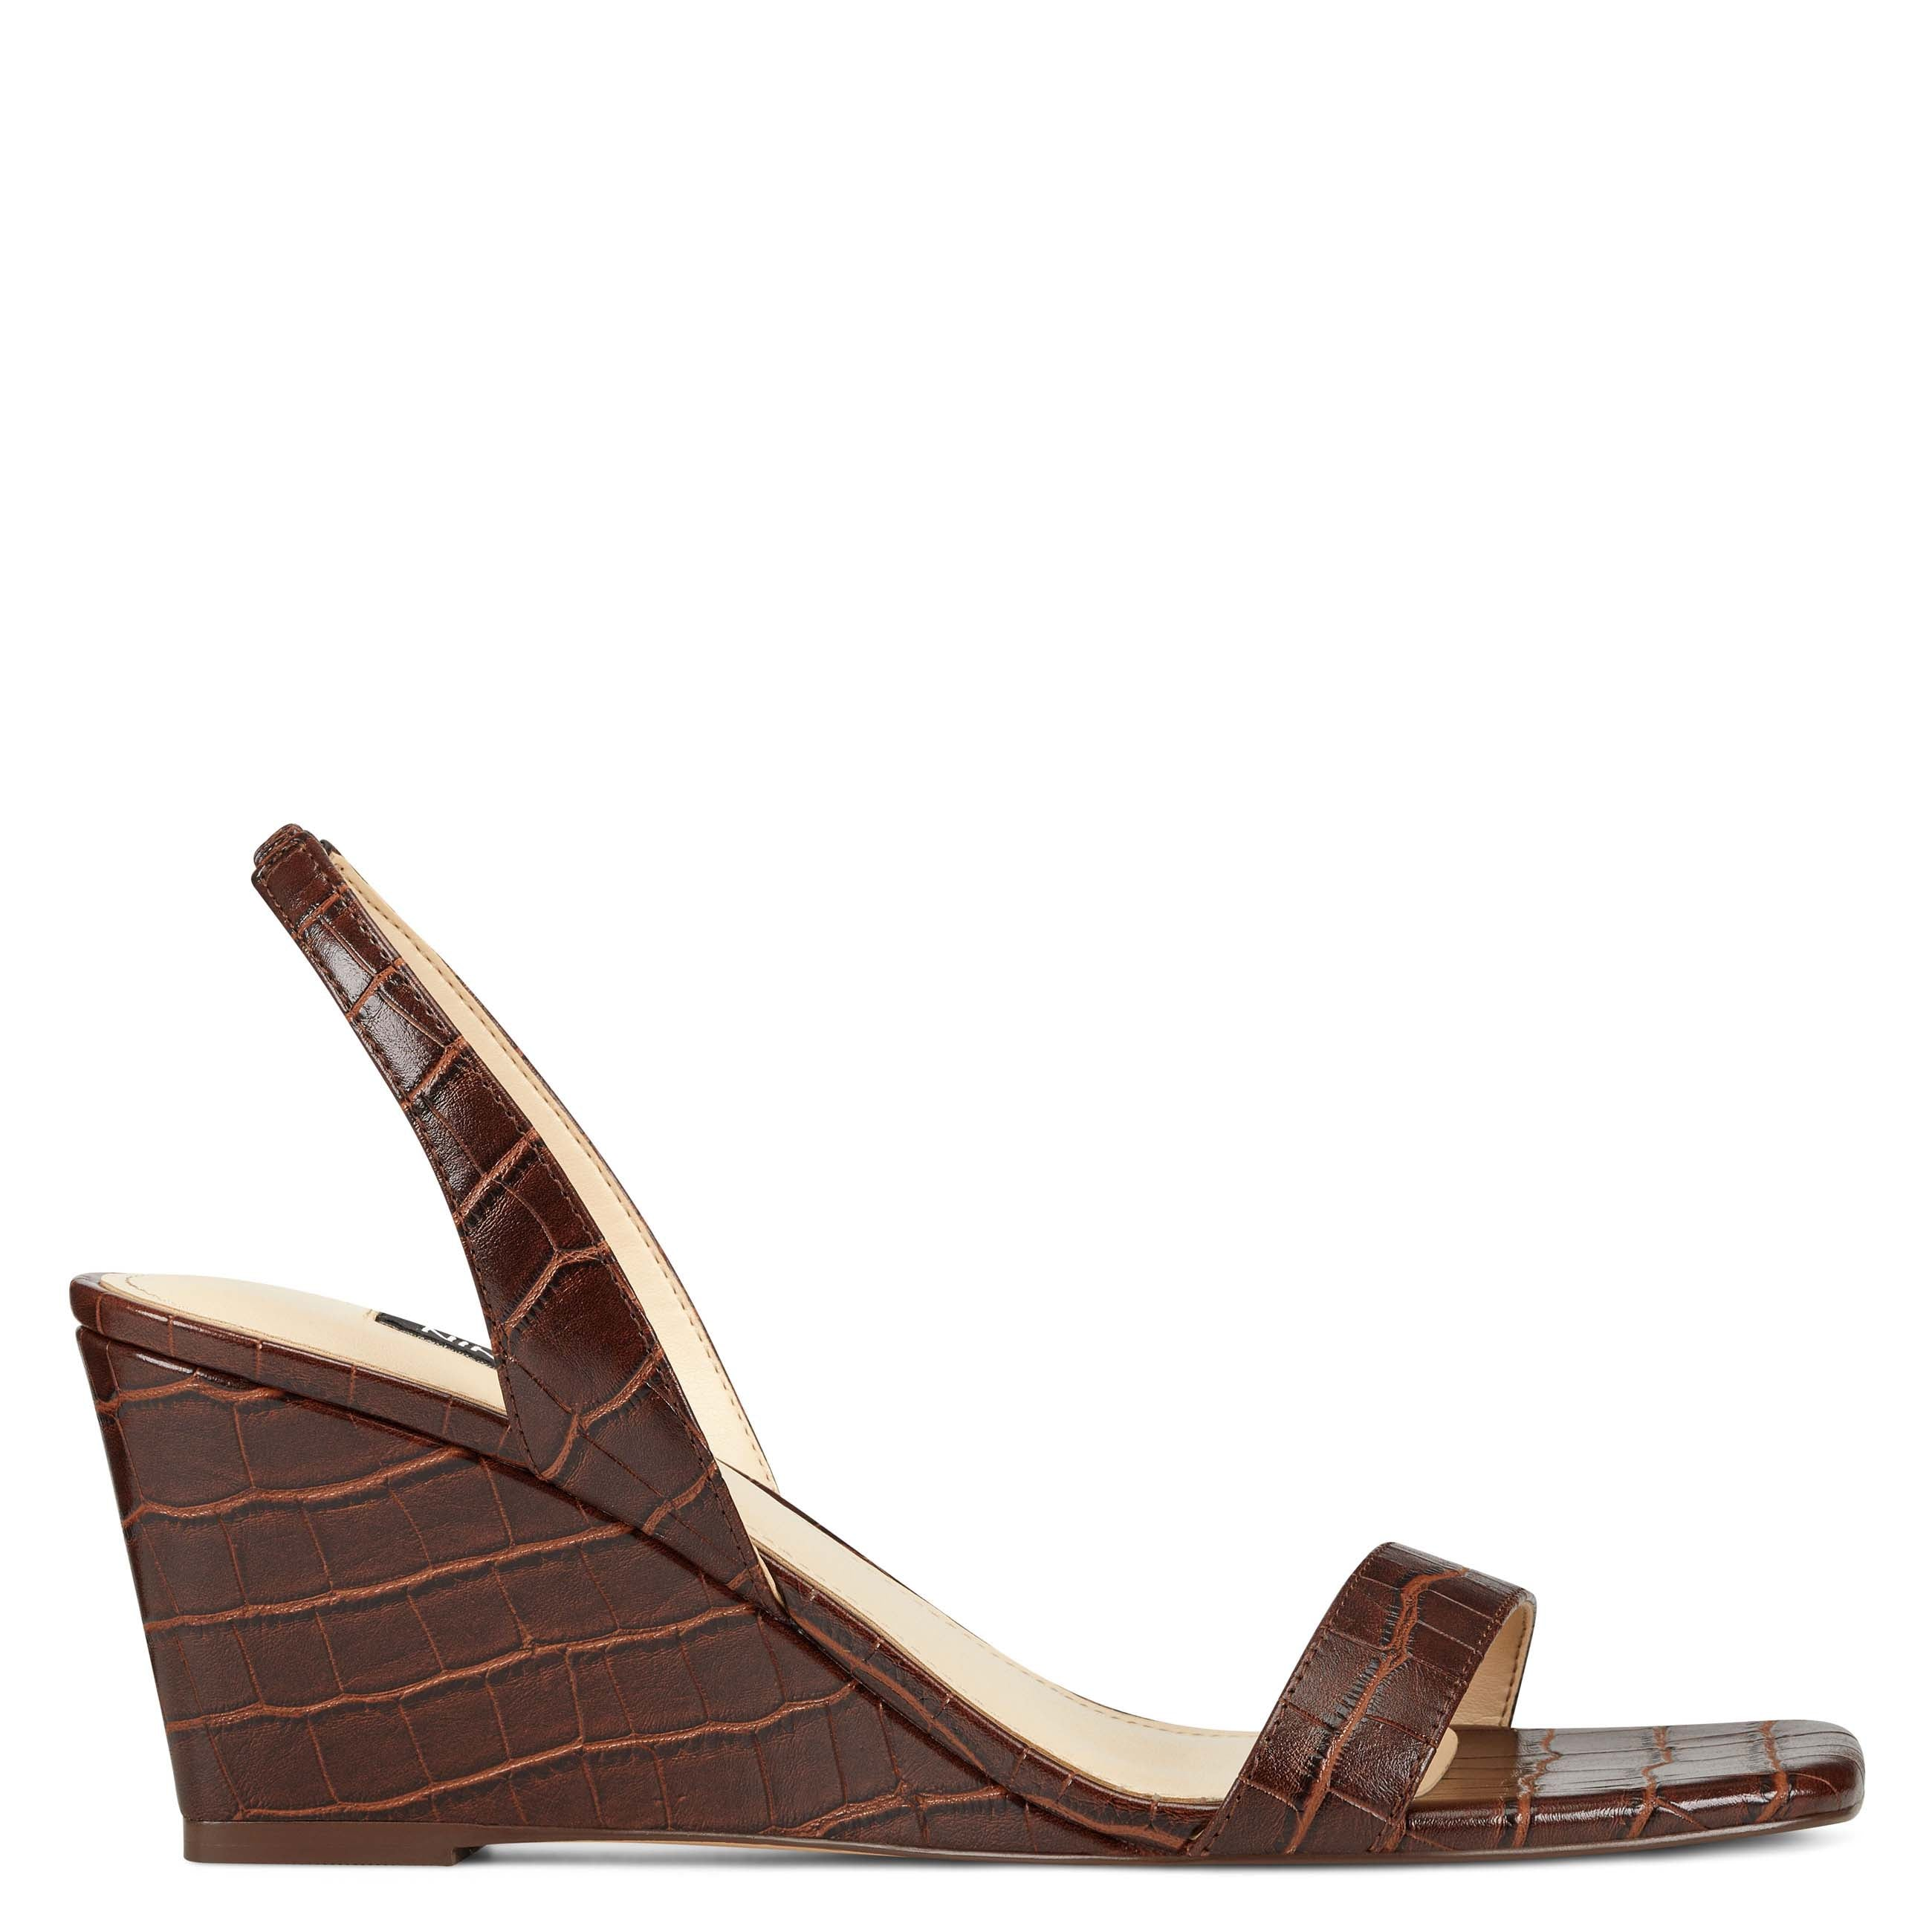 NINEWEST Kalia Wedge Slingback Sandals